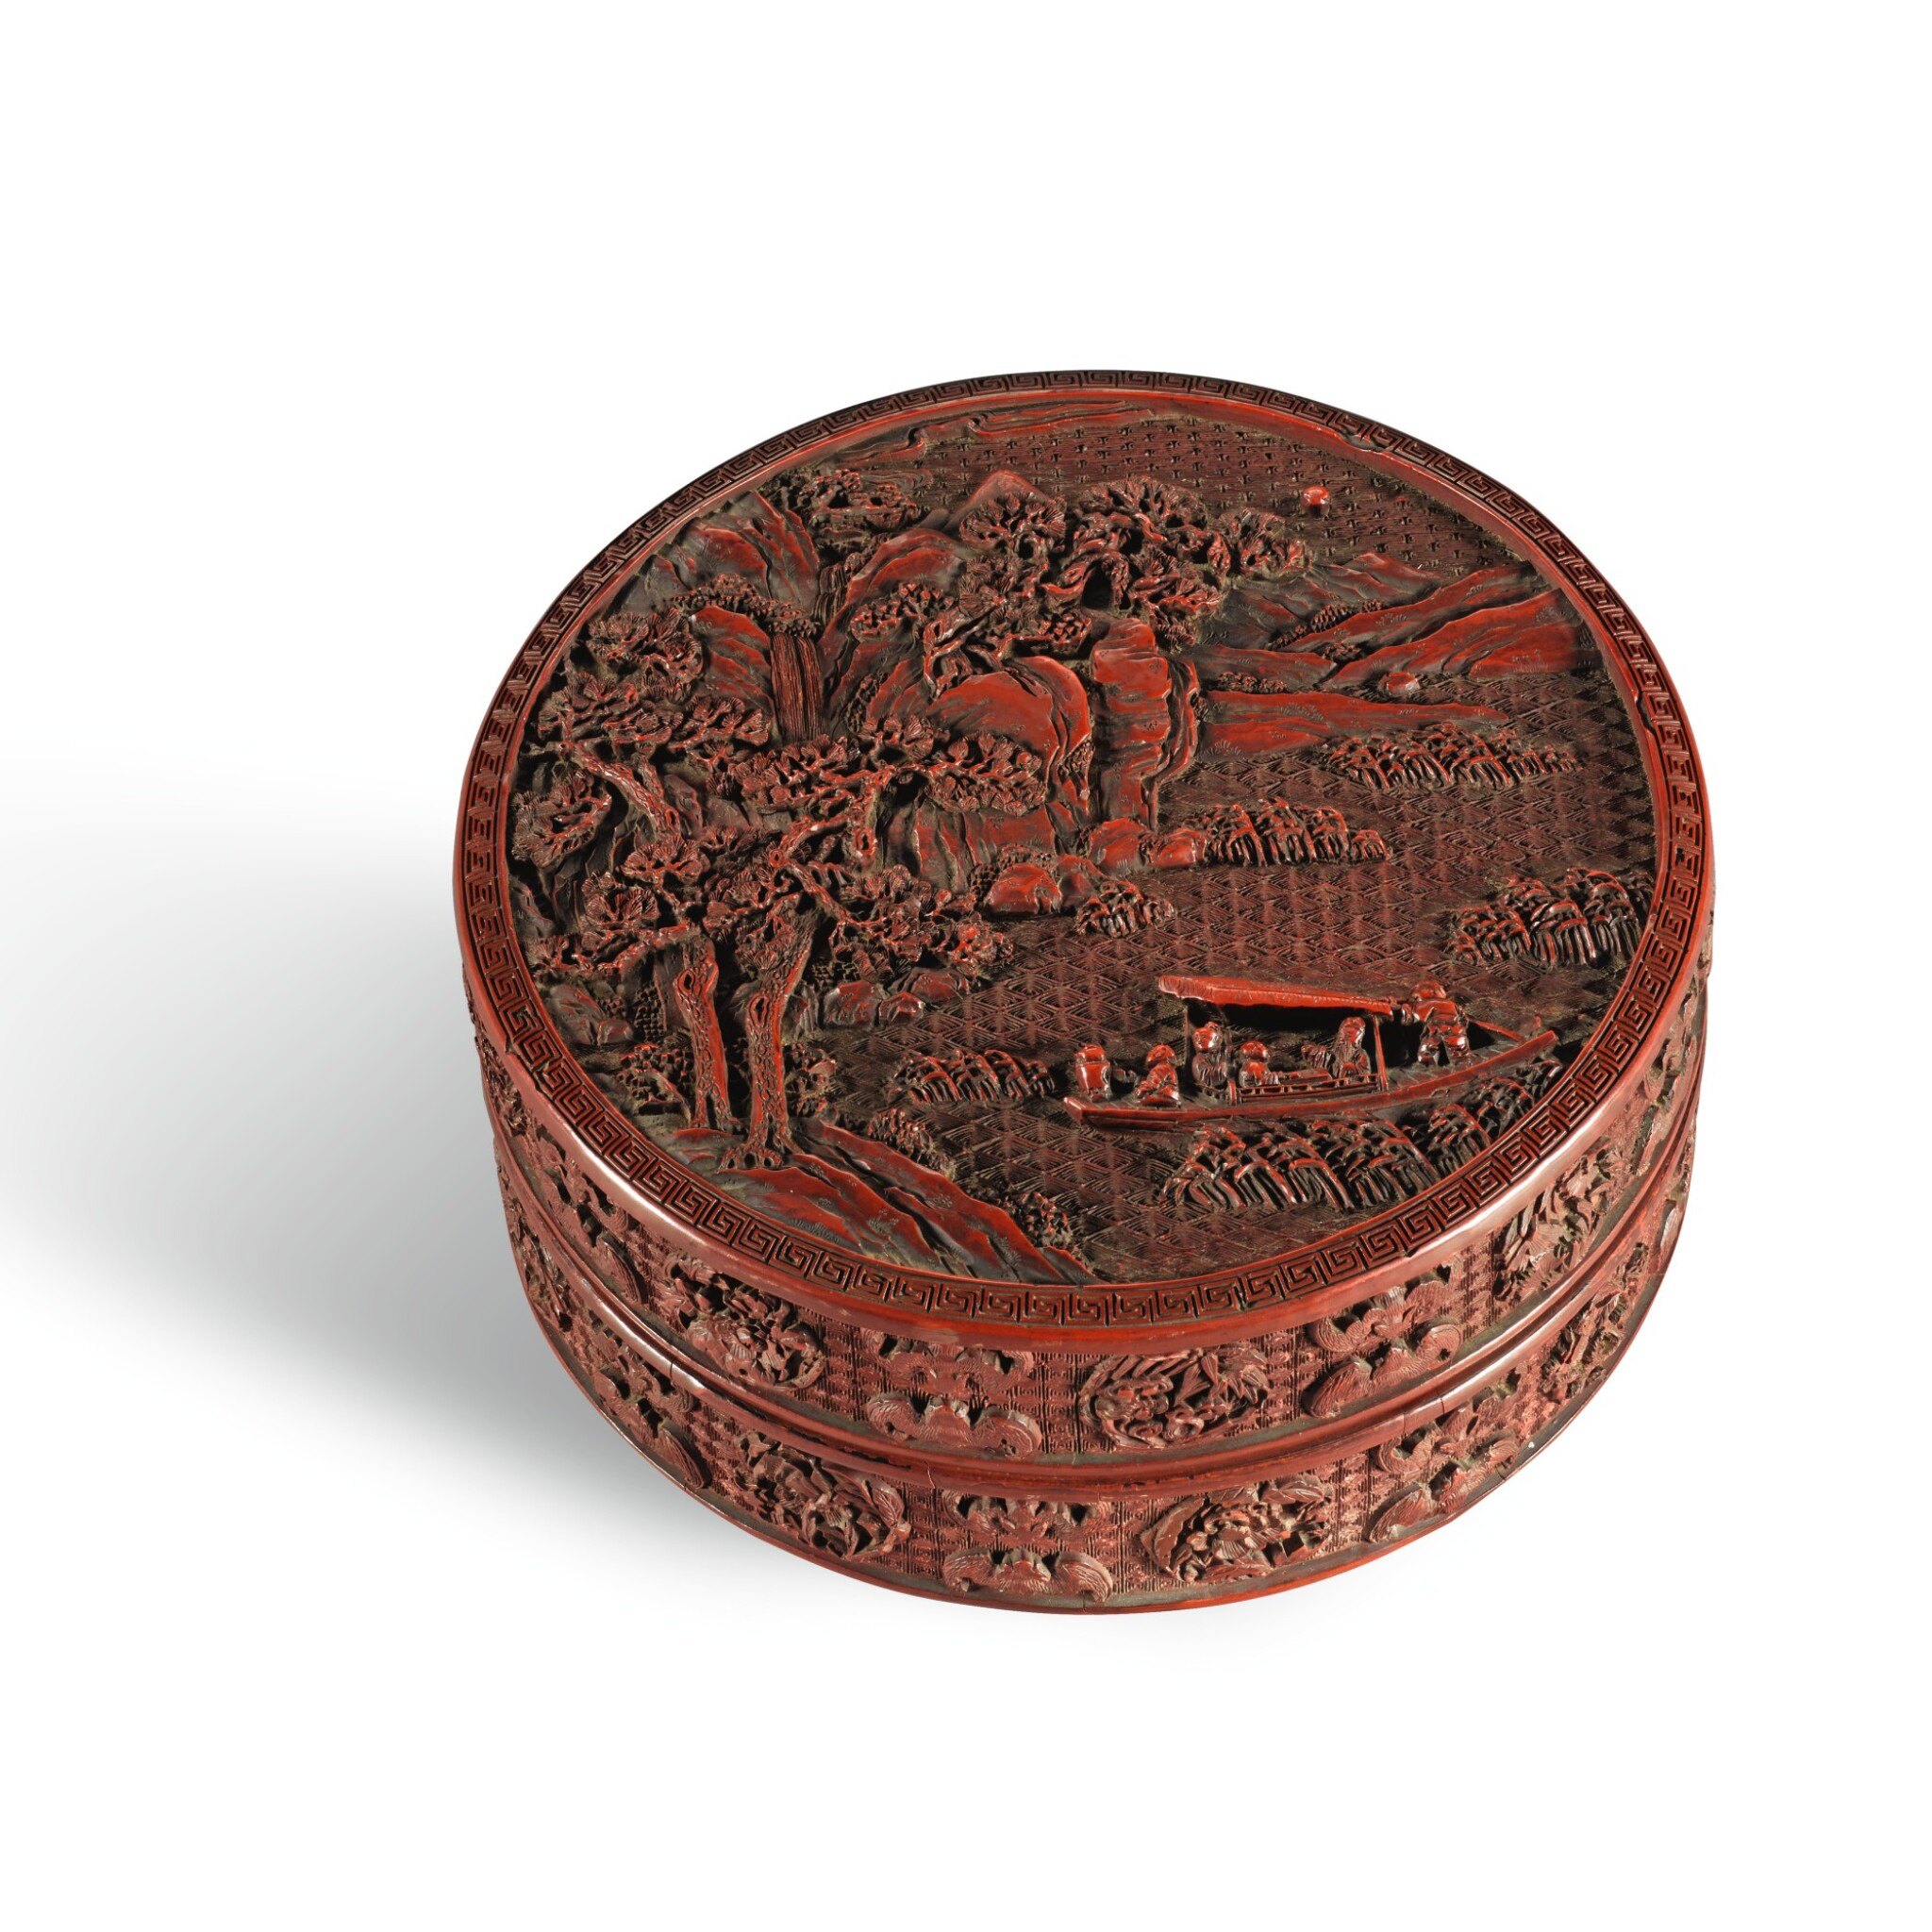 View full screen - View 1 of Lot 45. AN IMPERIAL CARVED CINNABAR LACQUER BOX AND COVER, QIANLONG MARK AND PERIOD | 清乾隆 剔紅赤壁寶盒 《赤壁寶盒》、《大清乾隆年製》款.